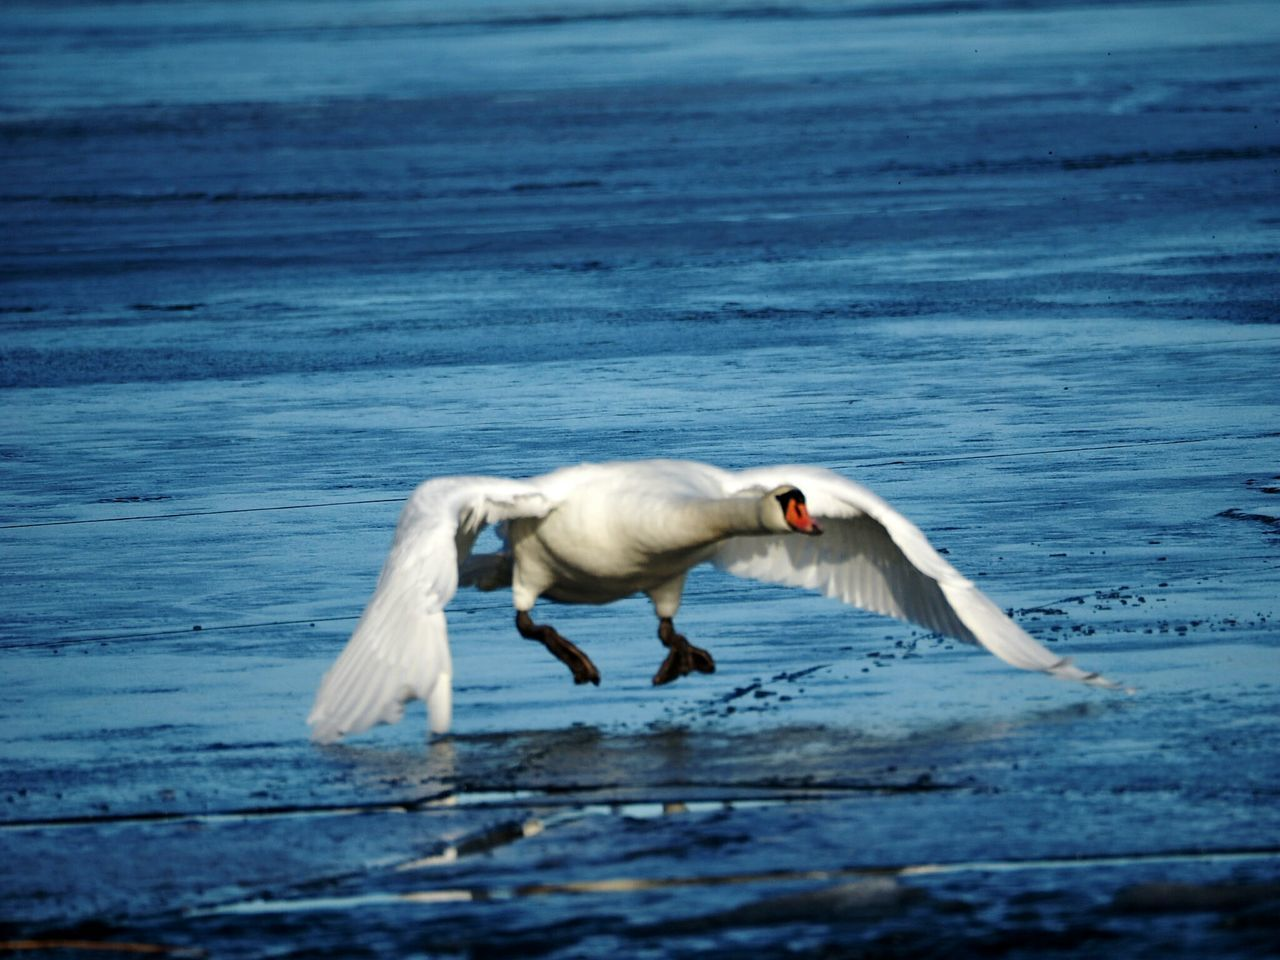 Animal Themes One Animal Nature Beauty In Nature Spread Wings Nature Sunny Winter Day Motion Swan Winter Nature Outside Spreading Wings Frozen Sea Sea Bird Ice Beauty In Nature Beautiful Nature Animal Wildlife Animals In The Wild Cold Temperature